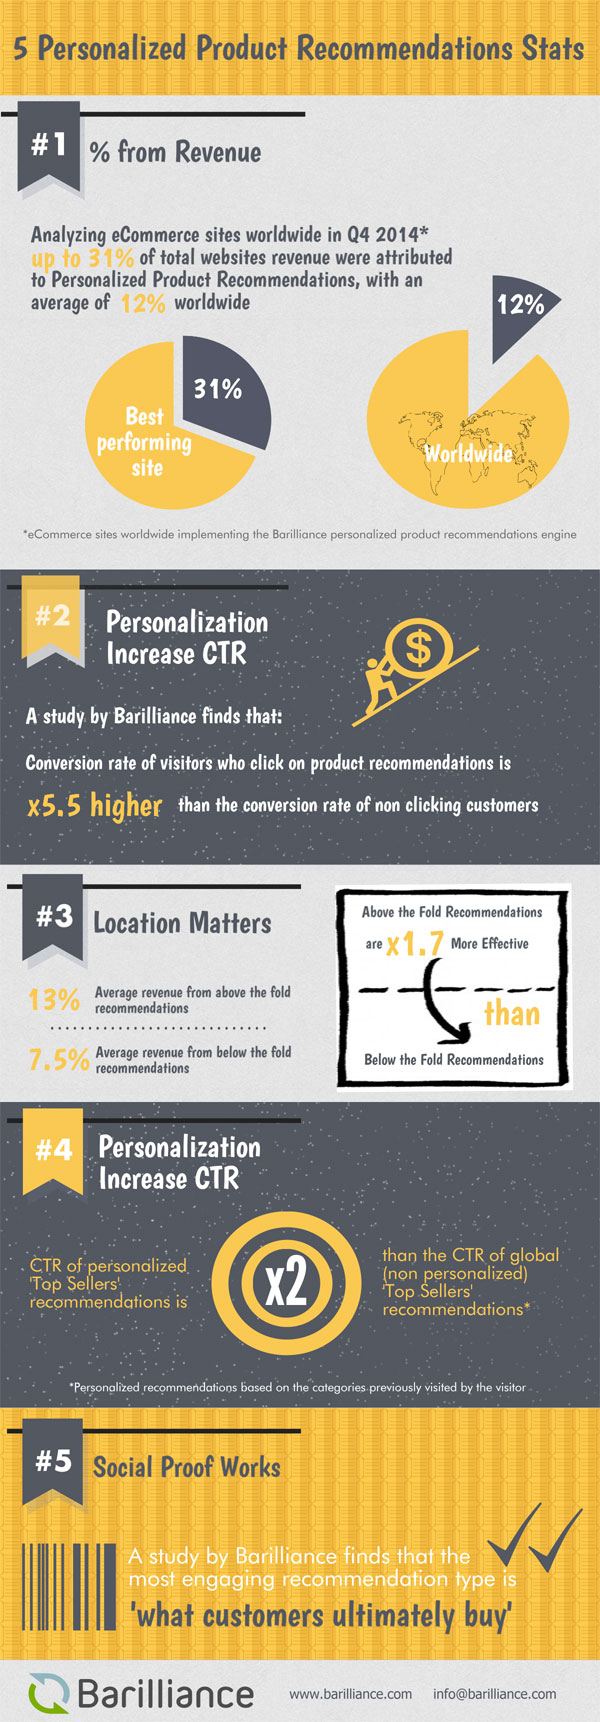 personalization-recommendation-infographic